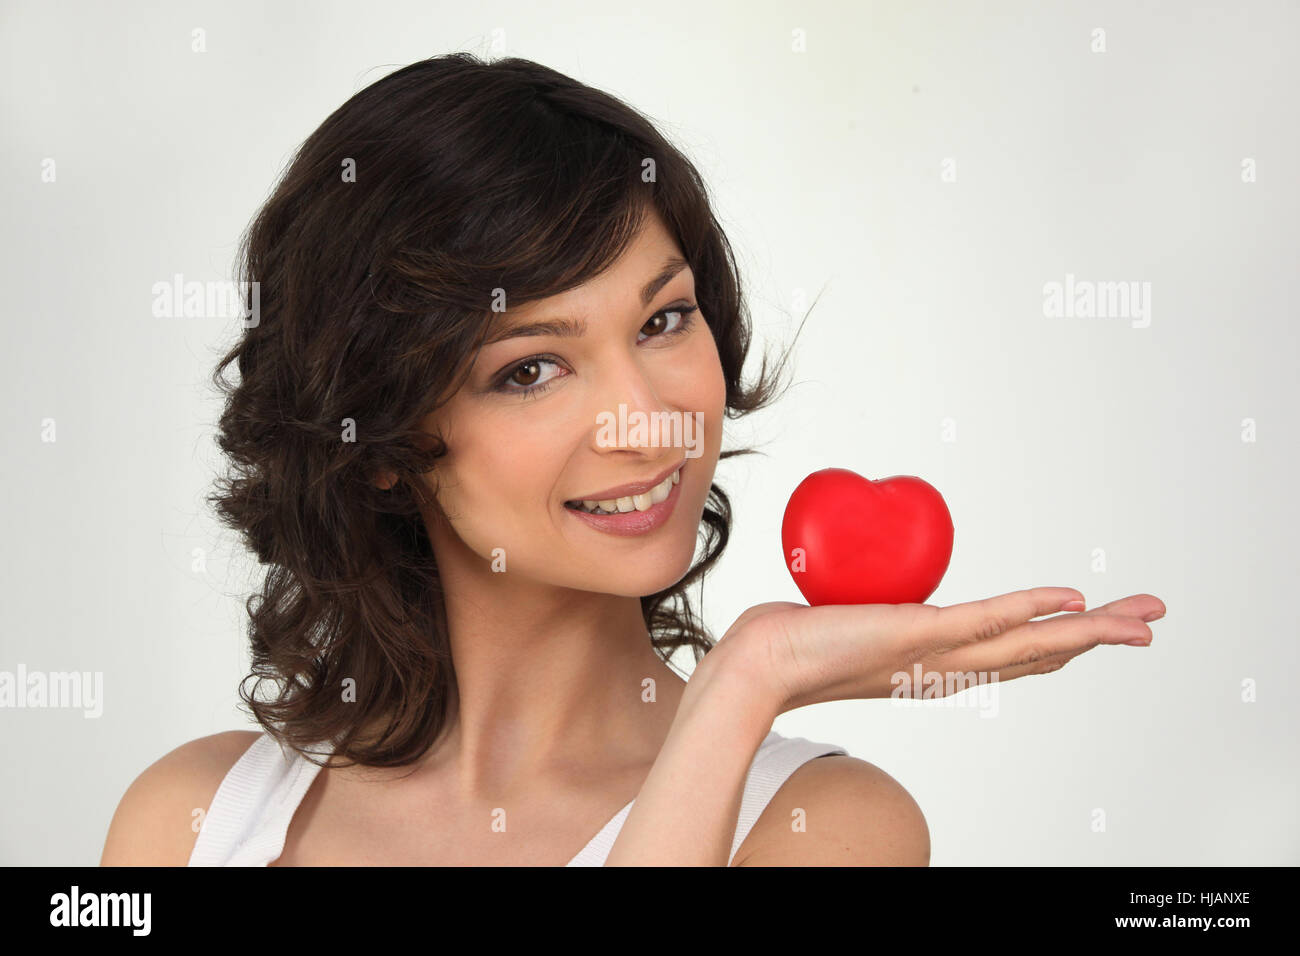 brown, brownish, brunette, adult, charming, adults, cupid, allegory, analogy, - Stock Image